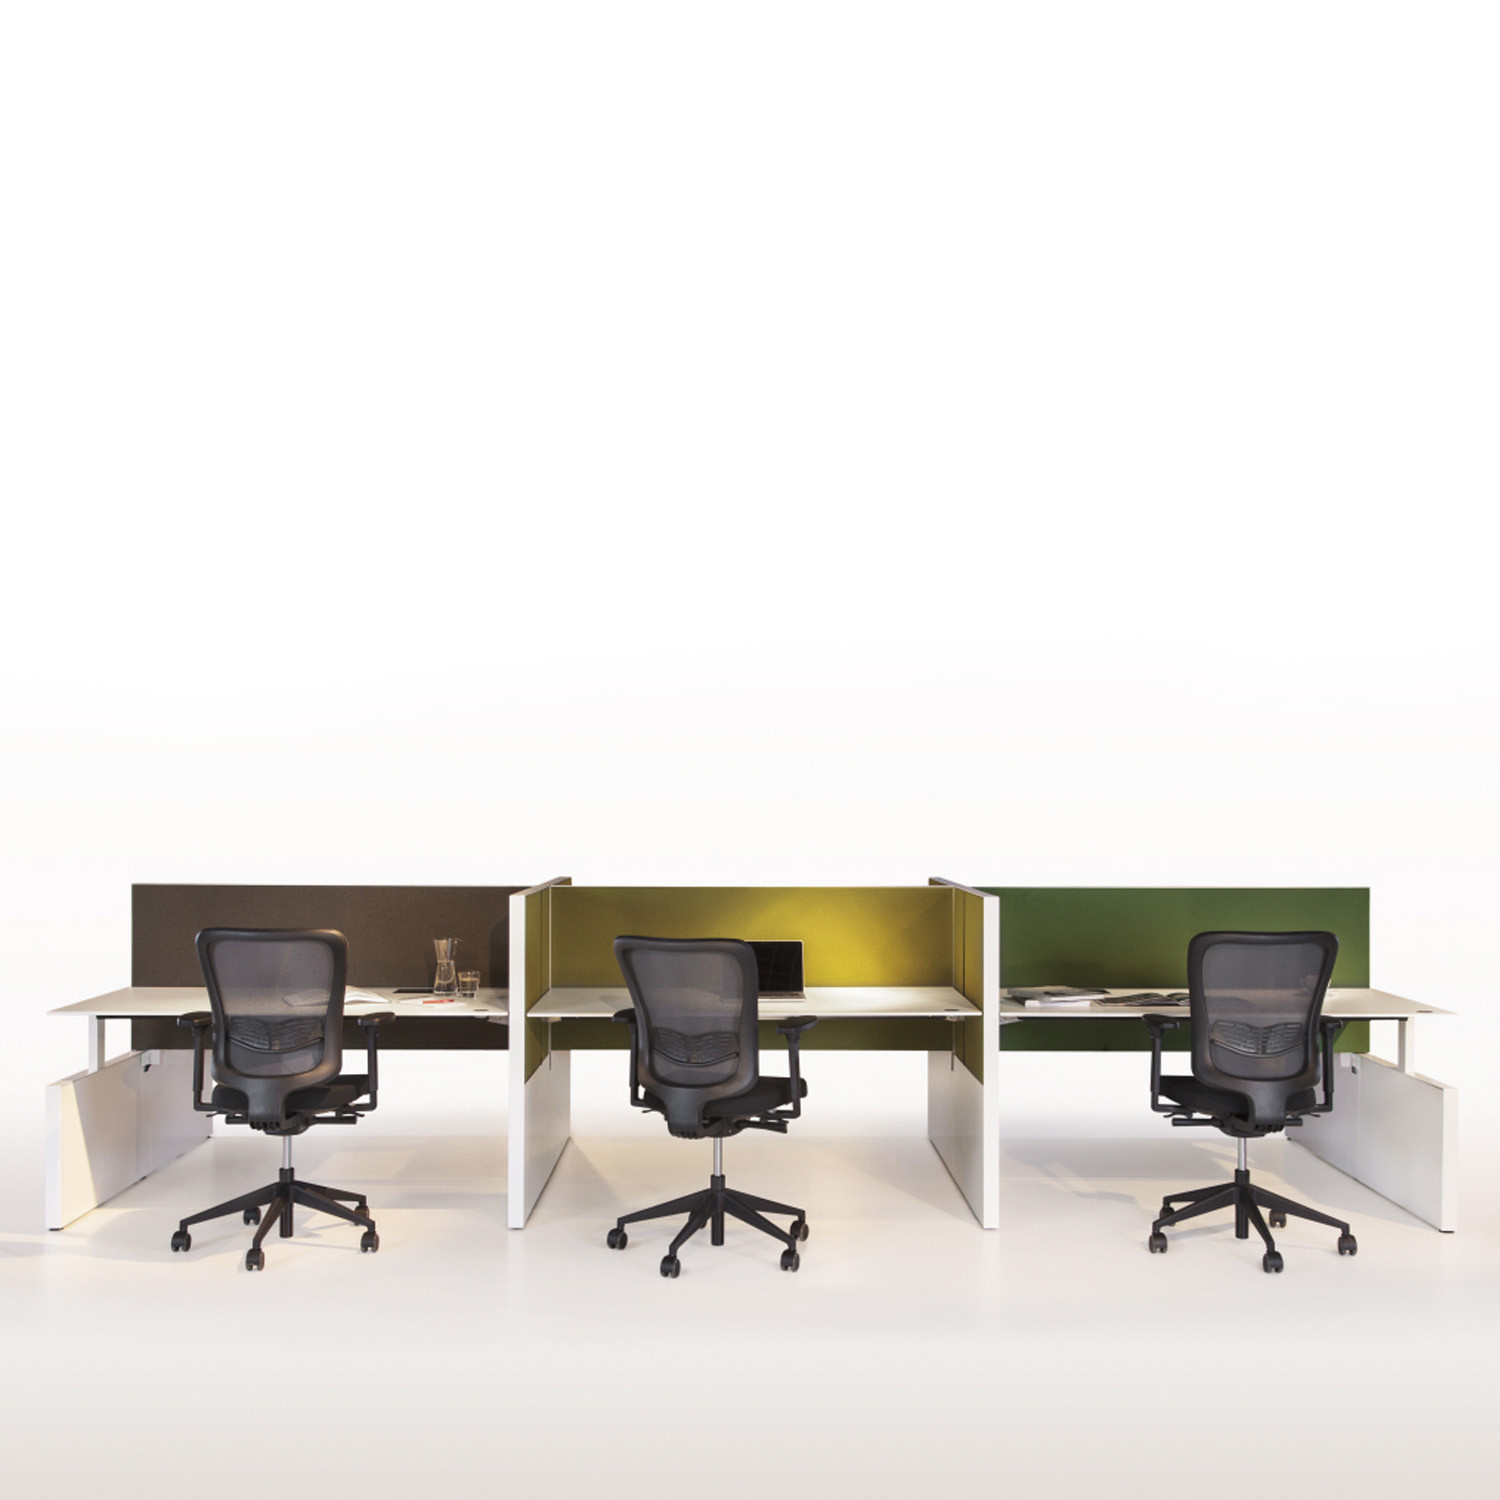 Ahrend Team_Up Office Furniture Desks